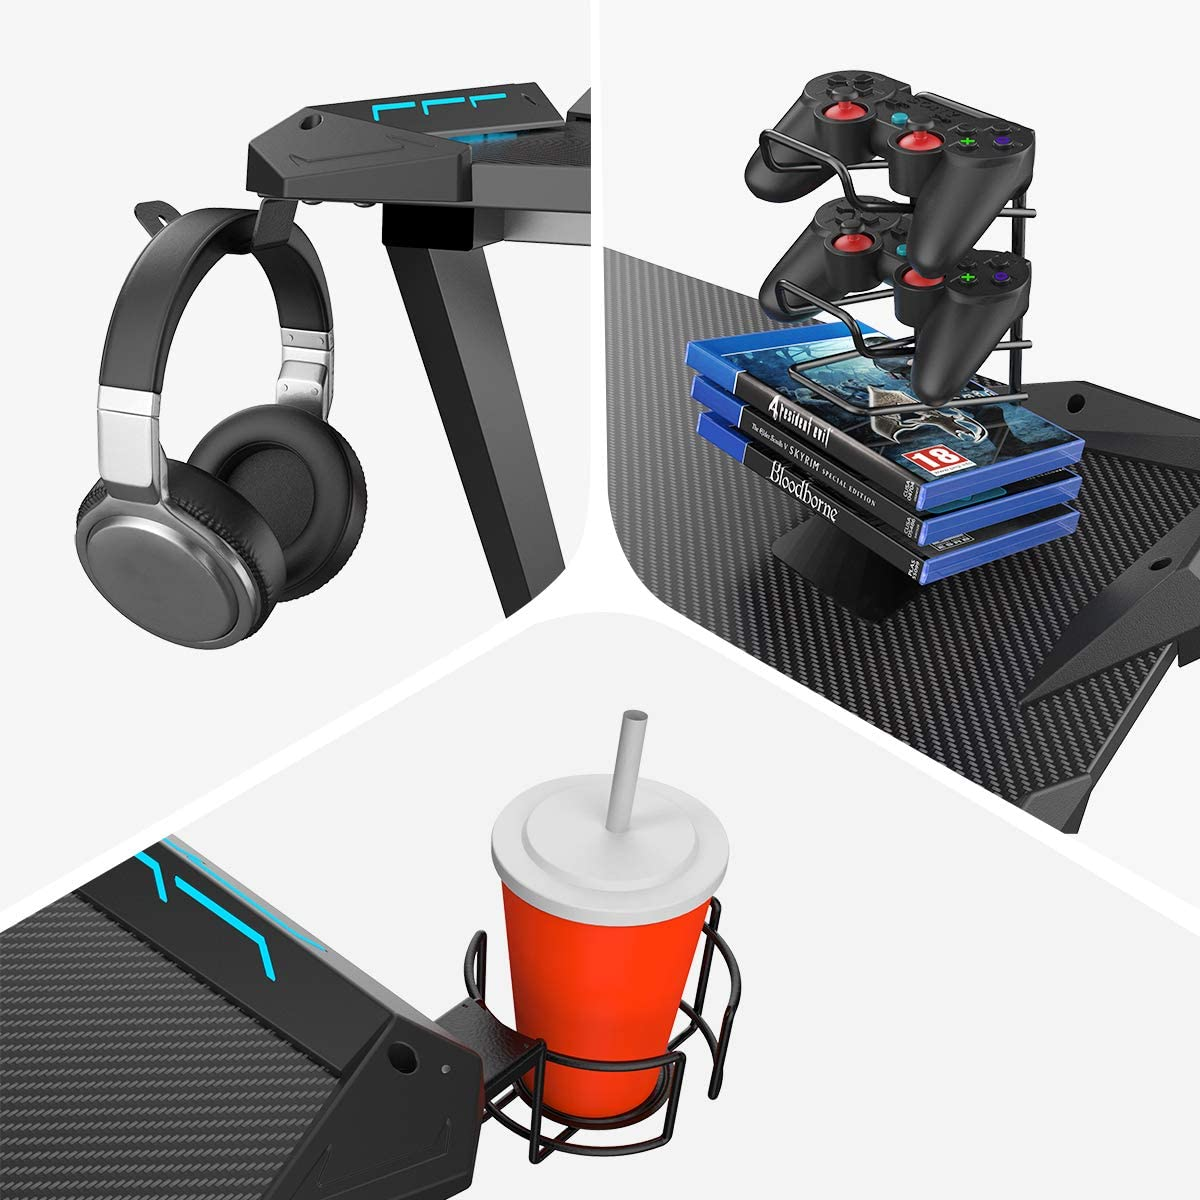 Eureka Ergonomic Gamer's Gear Rack Bundle - Cup Holder, Headset Hook & Controller Rack